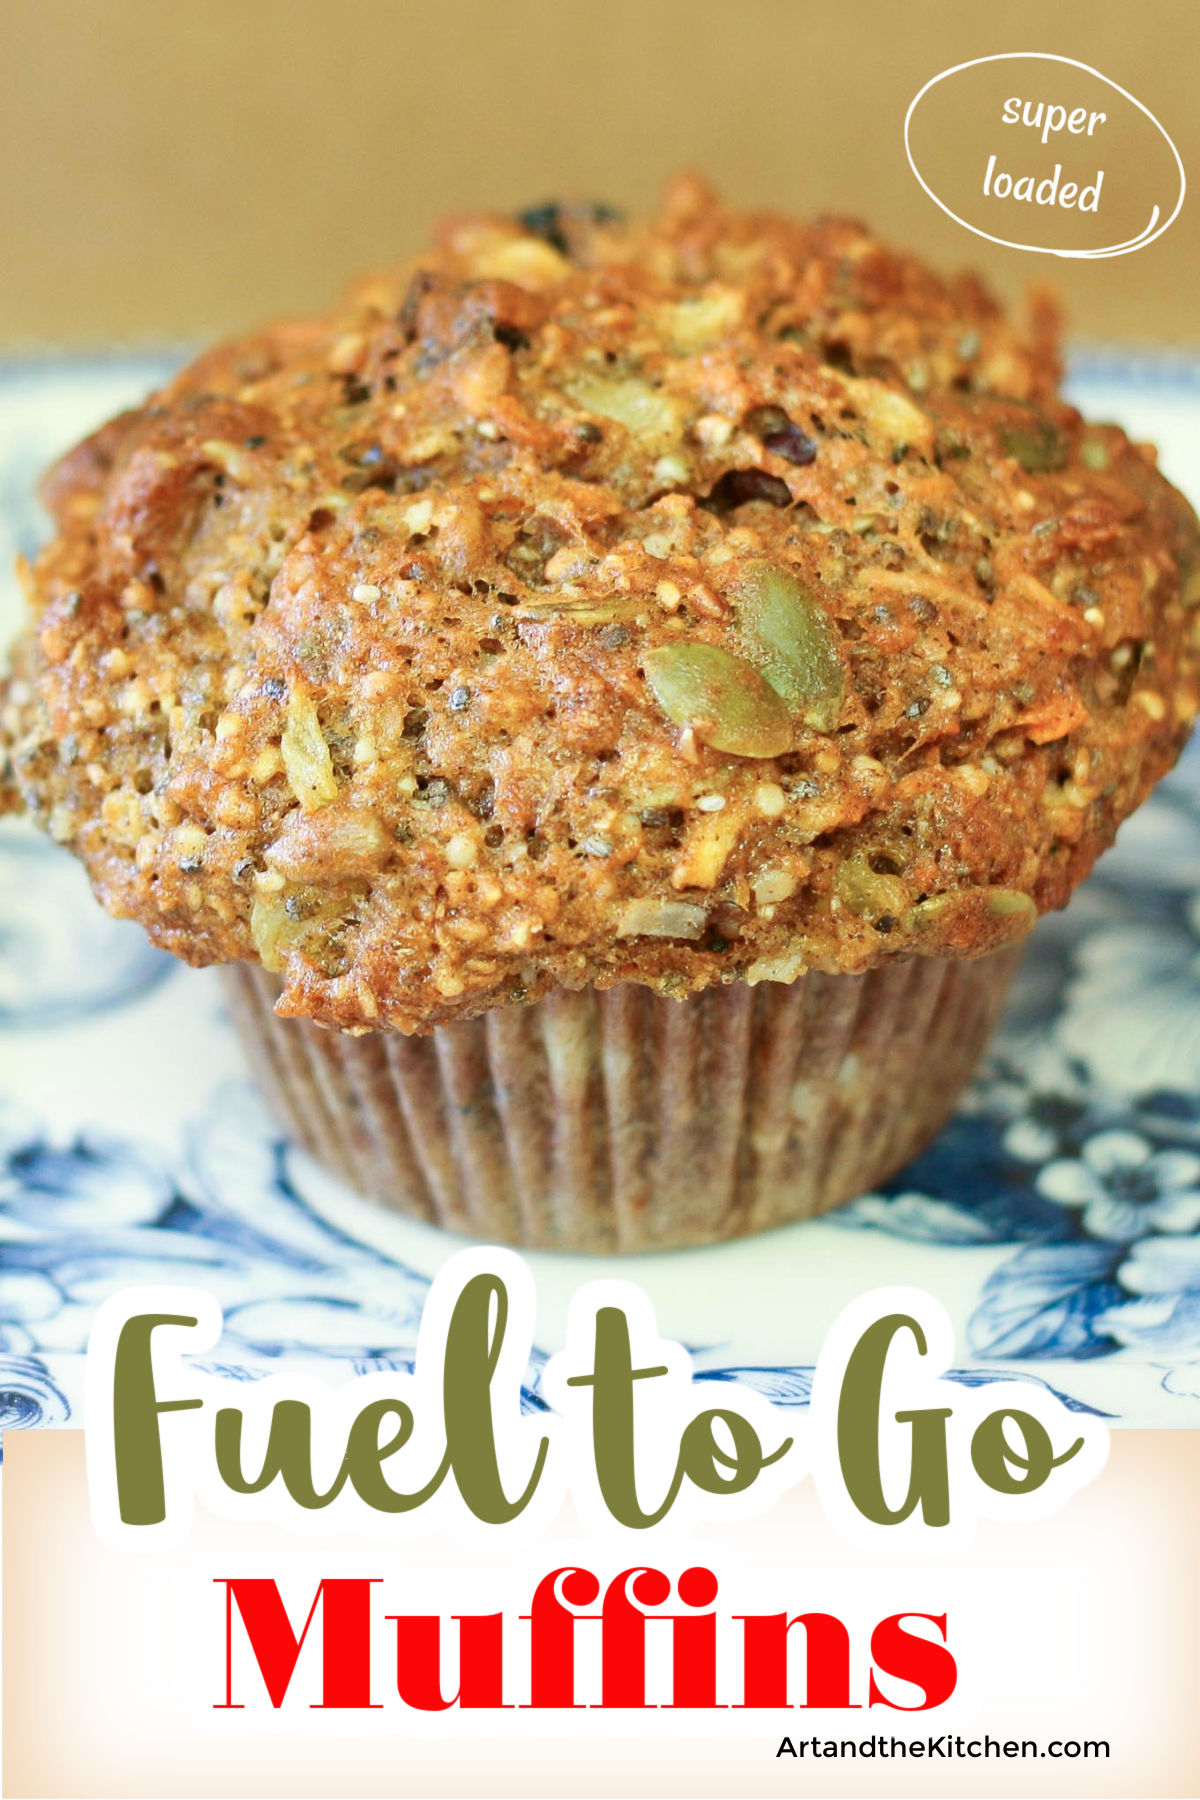 Fuel to Go Muffins are seriously loaded with chia, hemp, sunflower, pumpkin seeds. As well are dried fruit, carrots and multigrain flour. via @artandthekitch